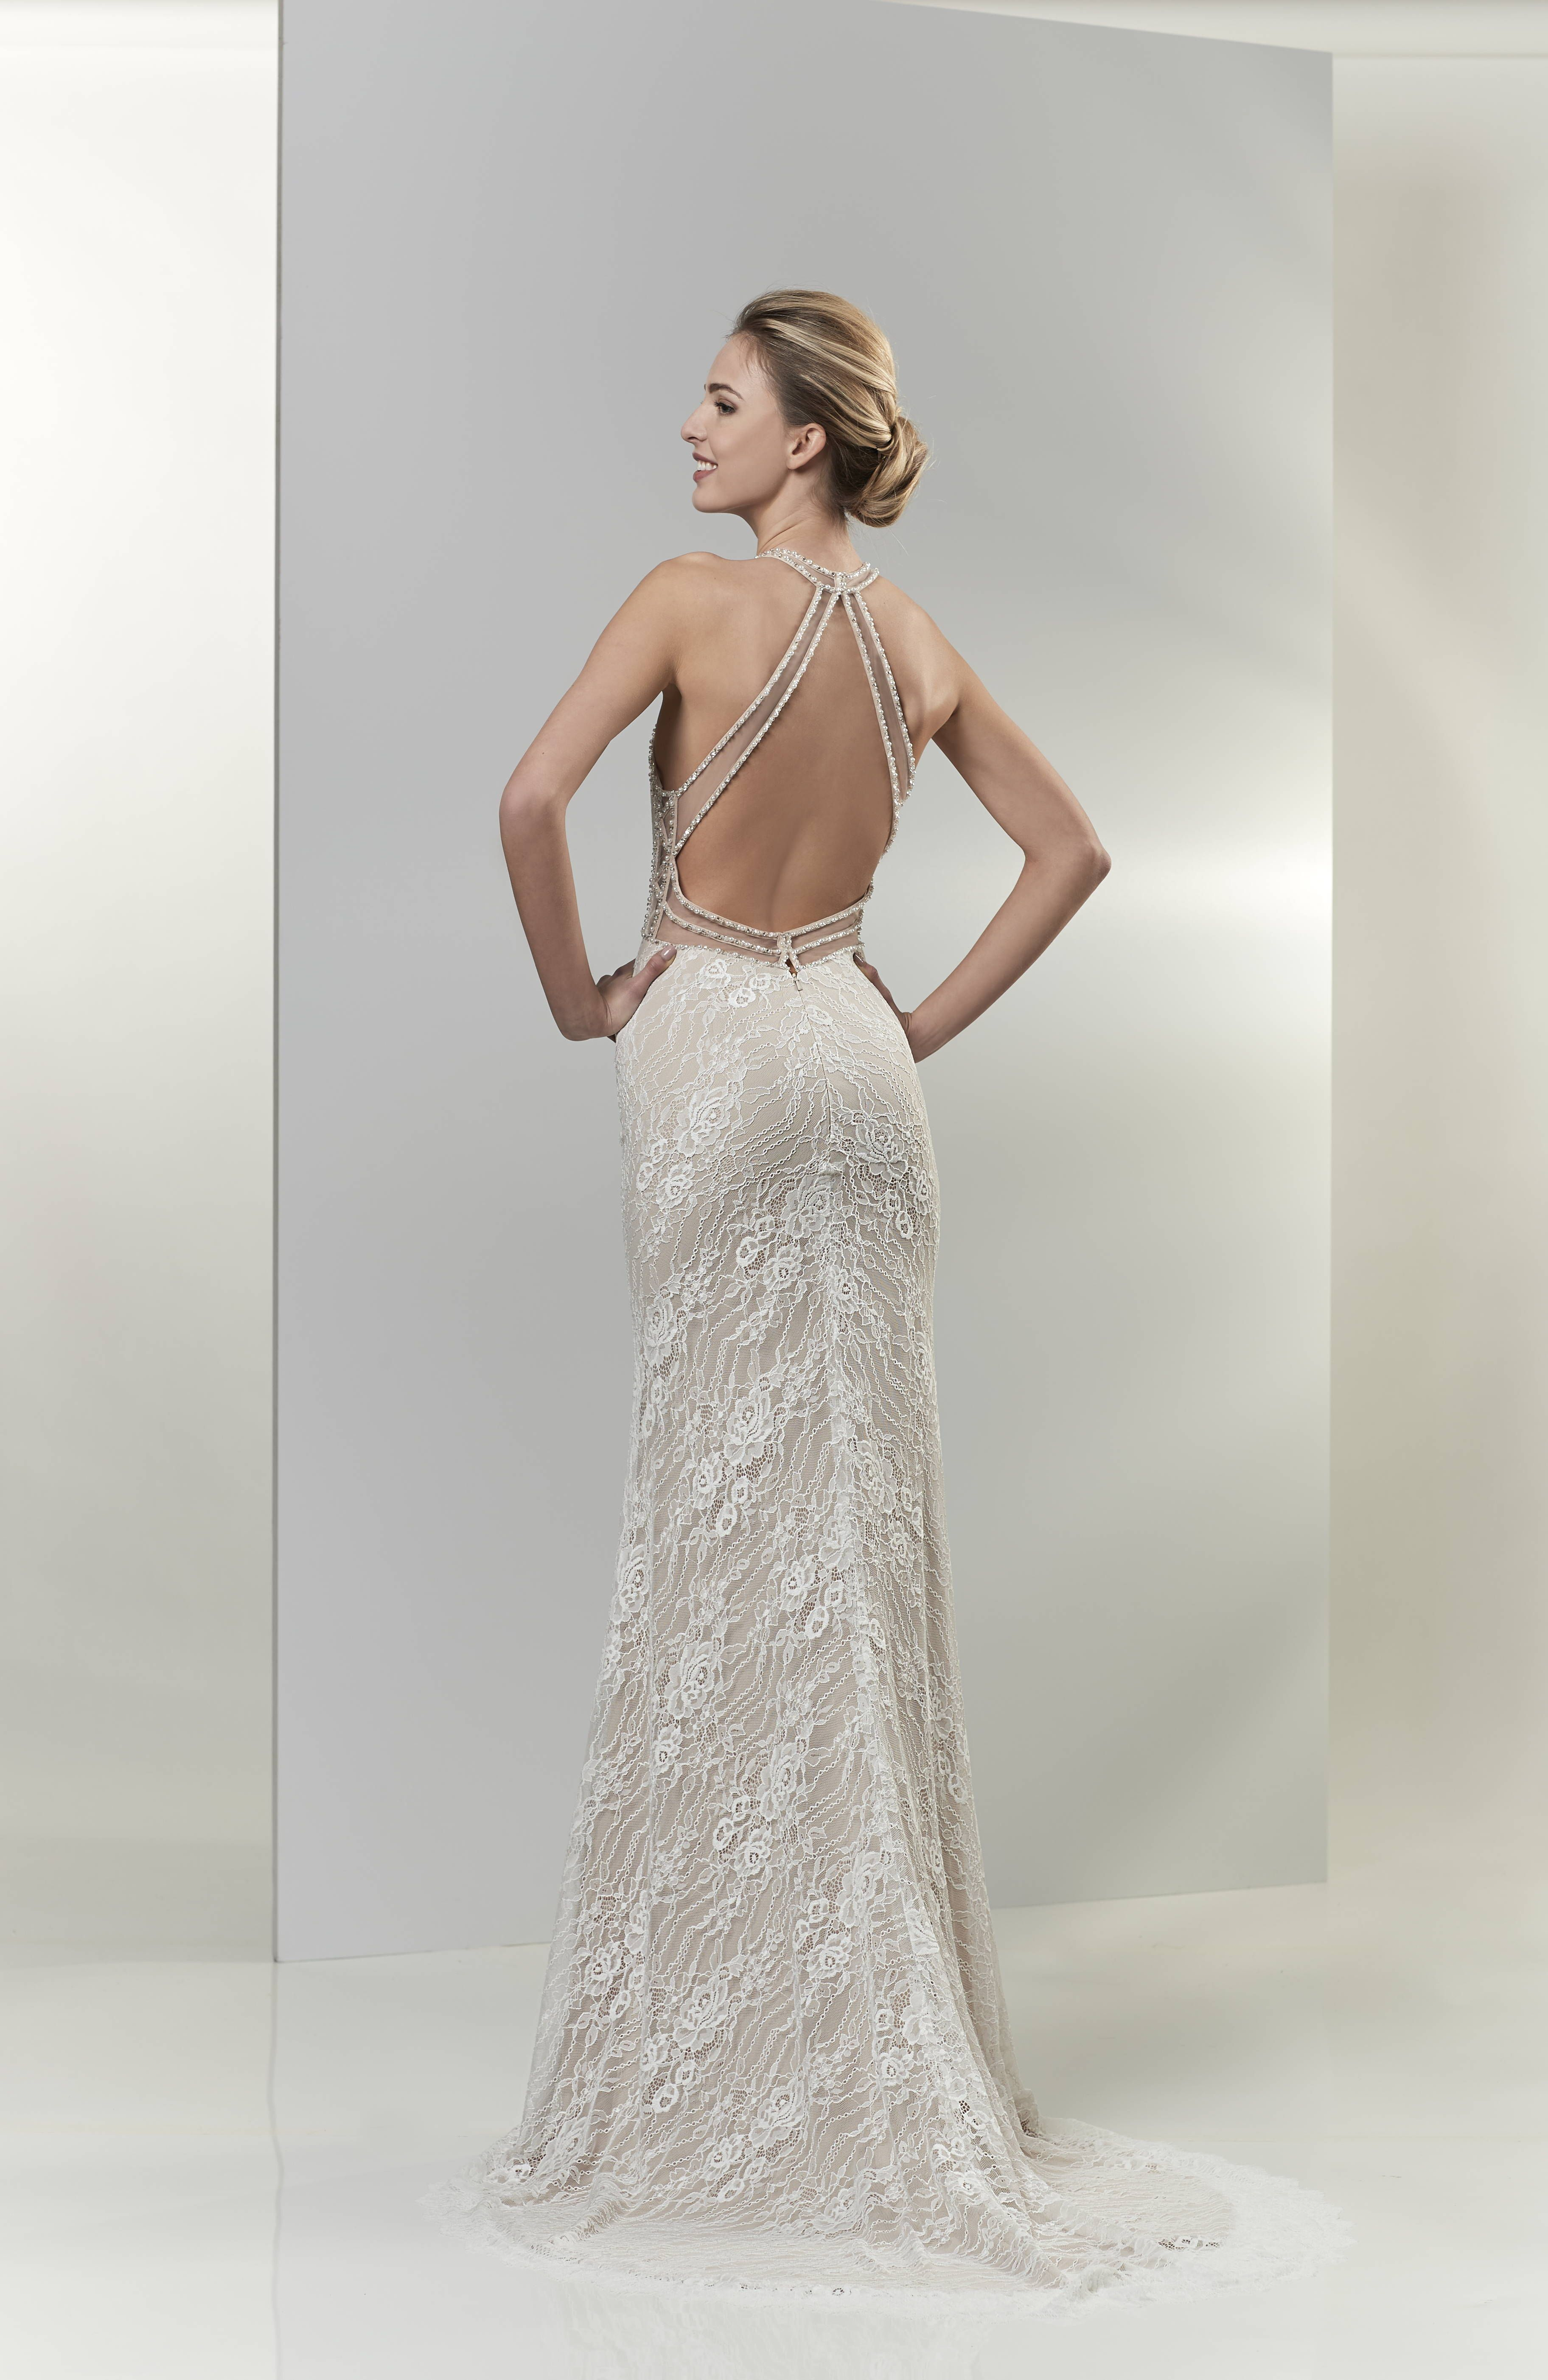 venus bridal collection 2019 - brautkleid at6658